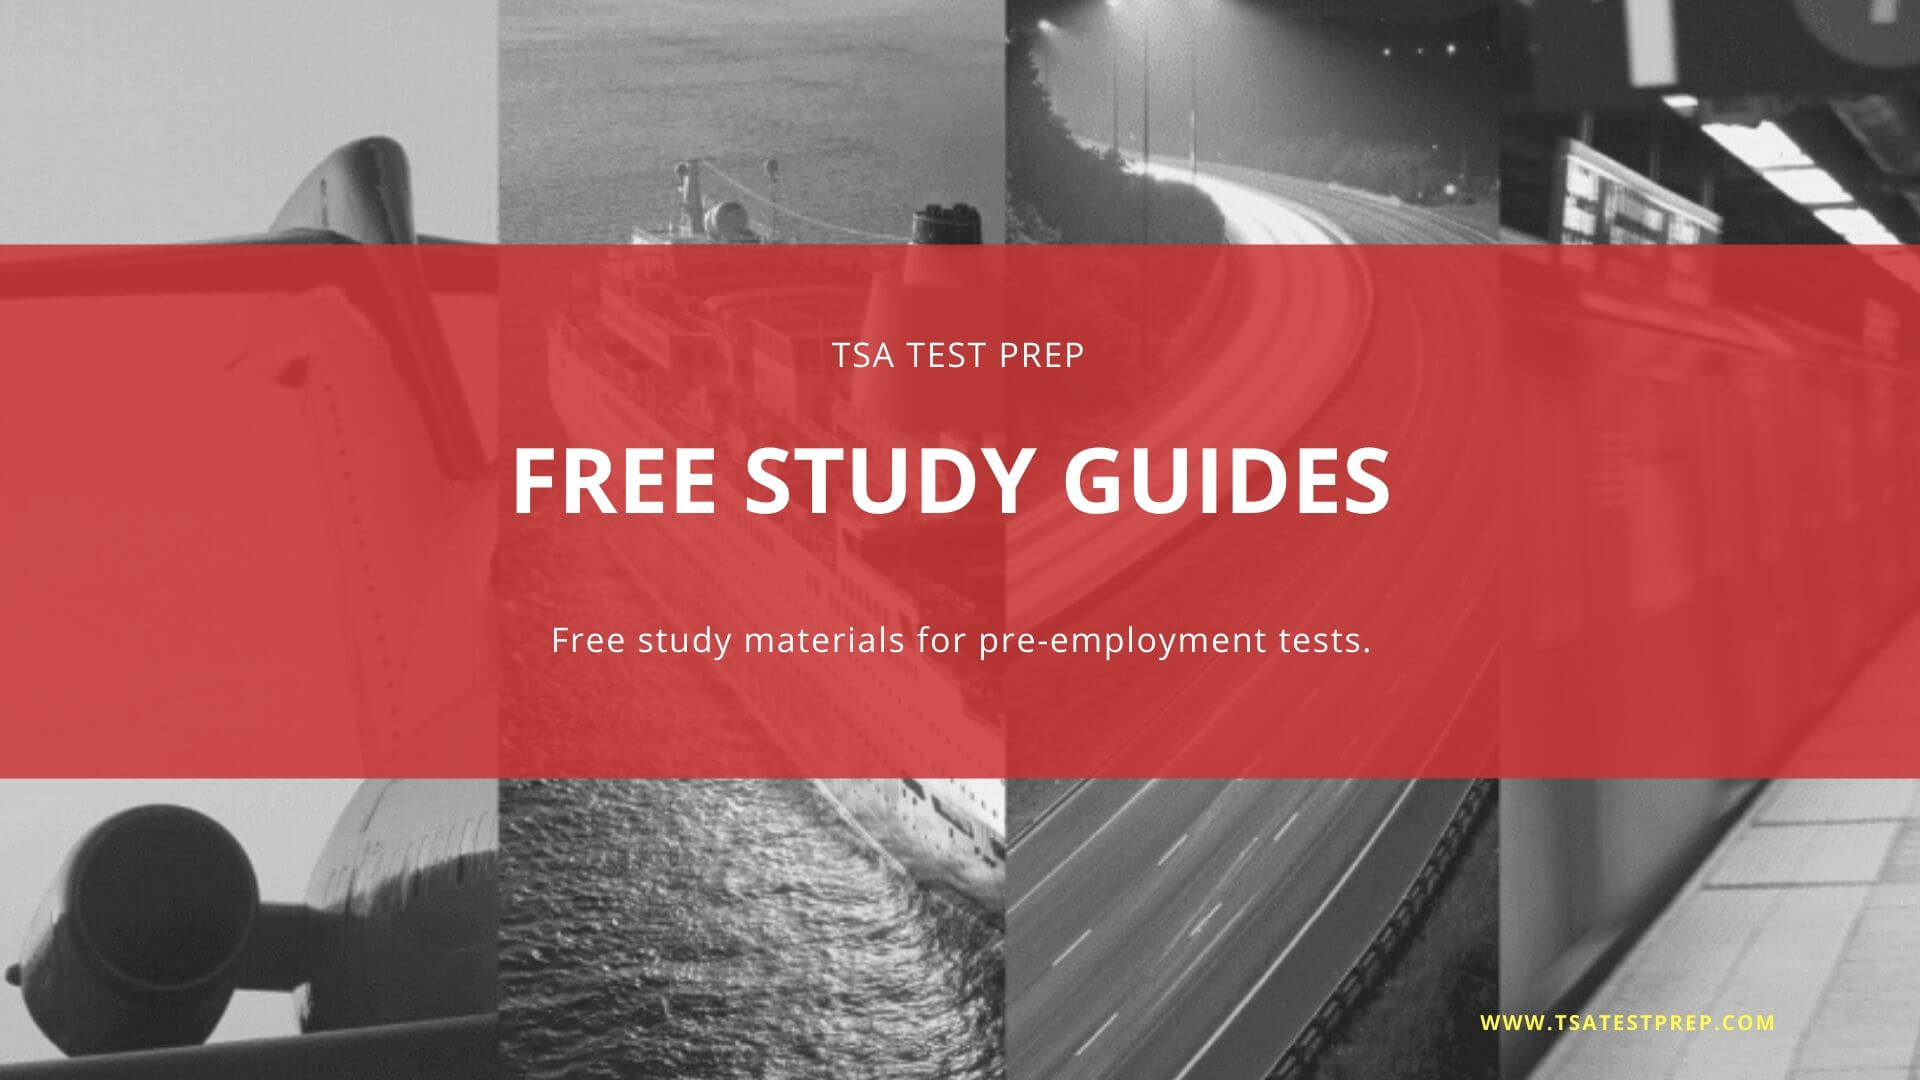 Access Free study materials for pre-employment tests.